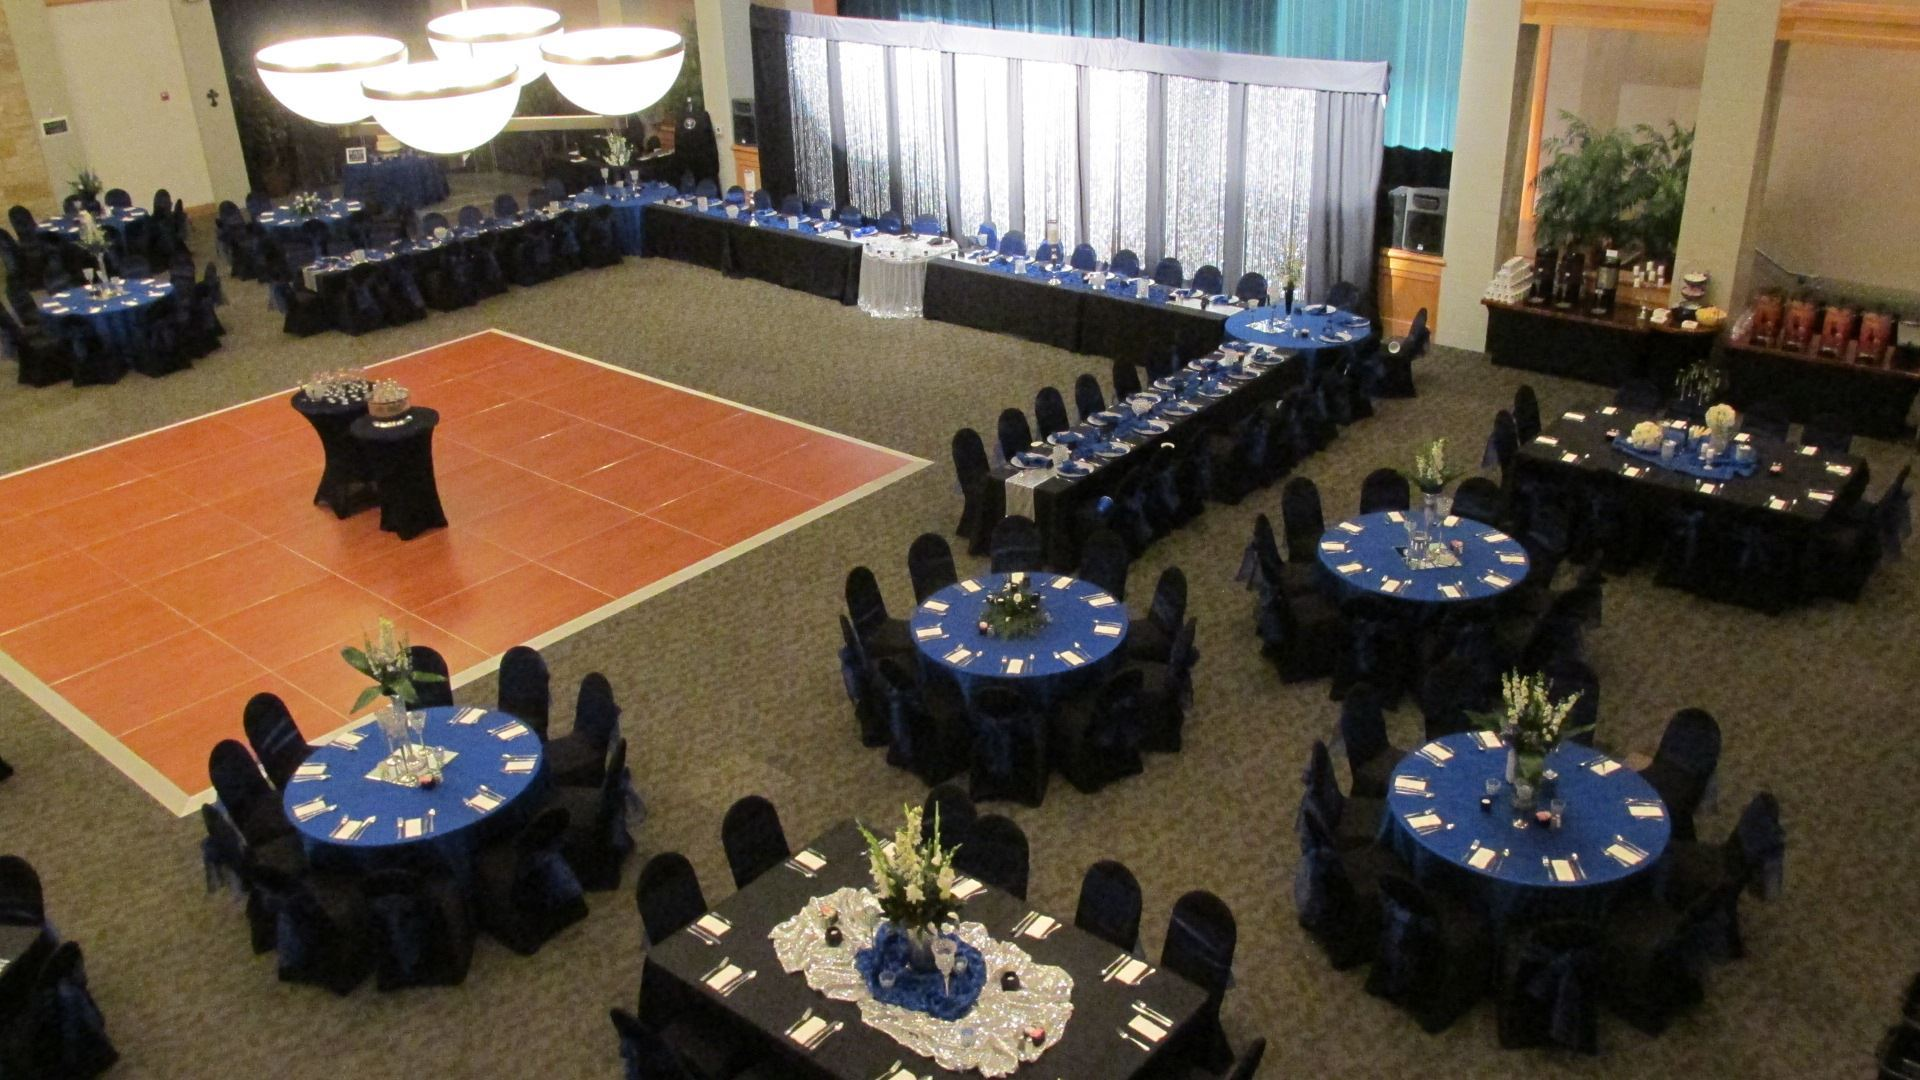 Aerial view of the head table for a royal wedding reception with table placements of black and blue table cloths and white napkins